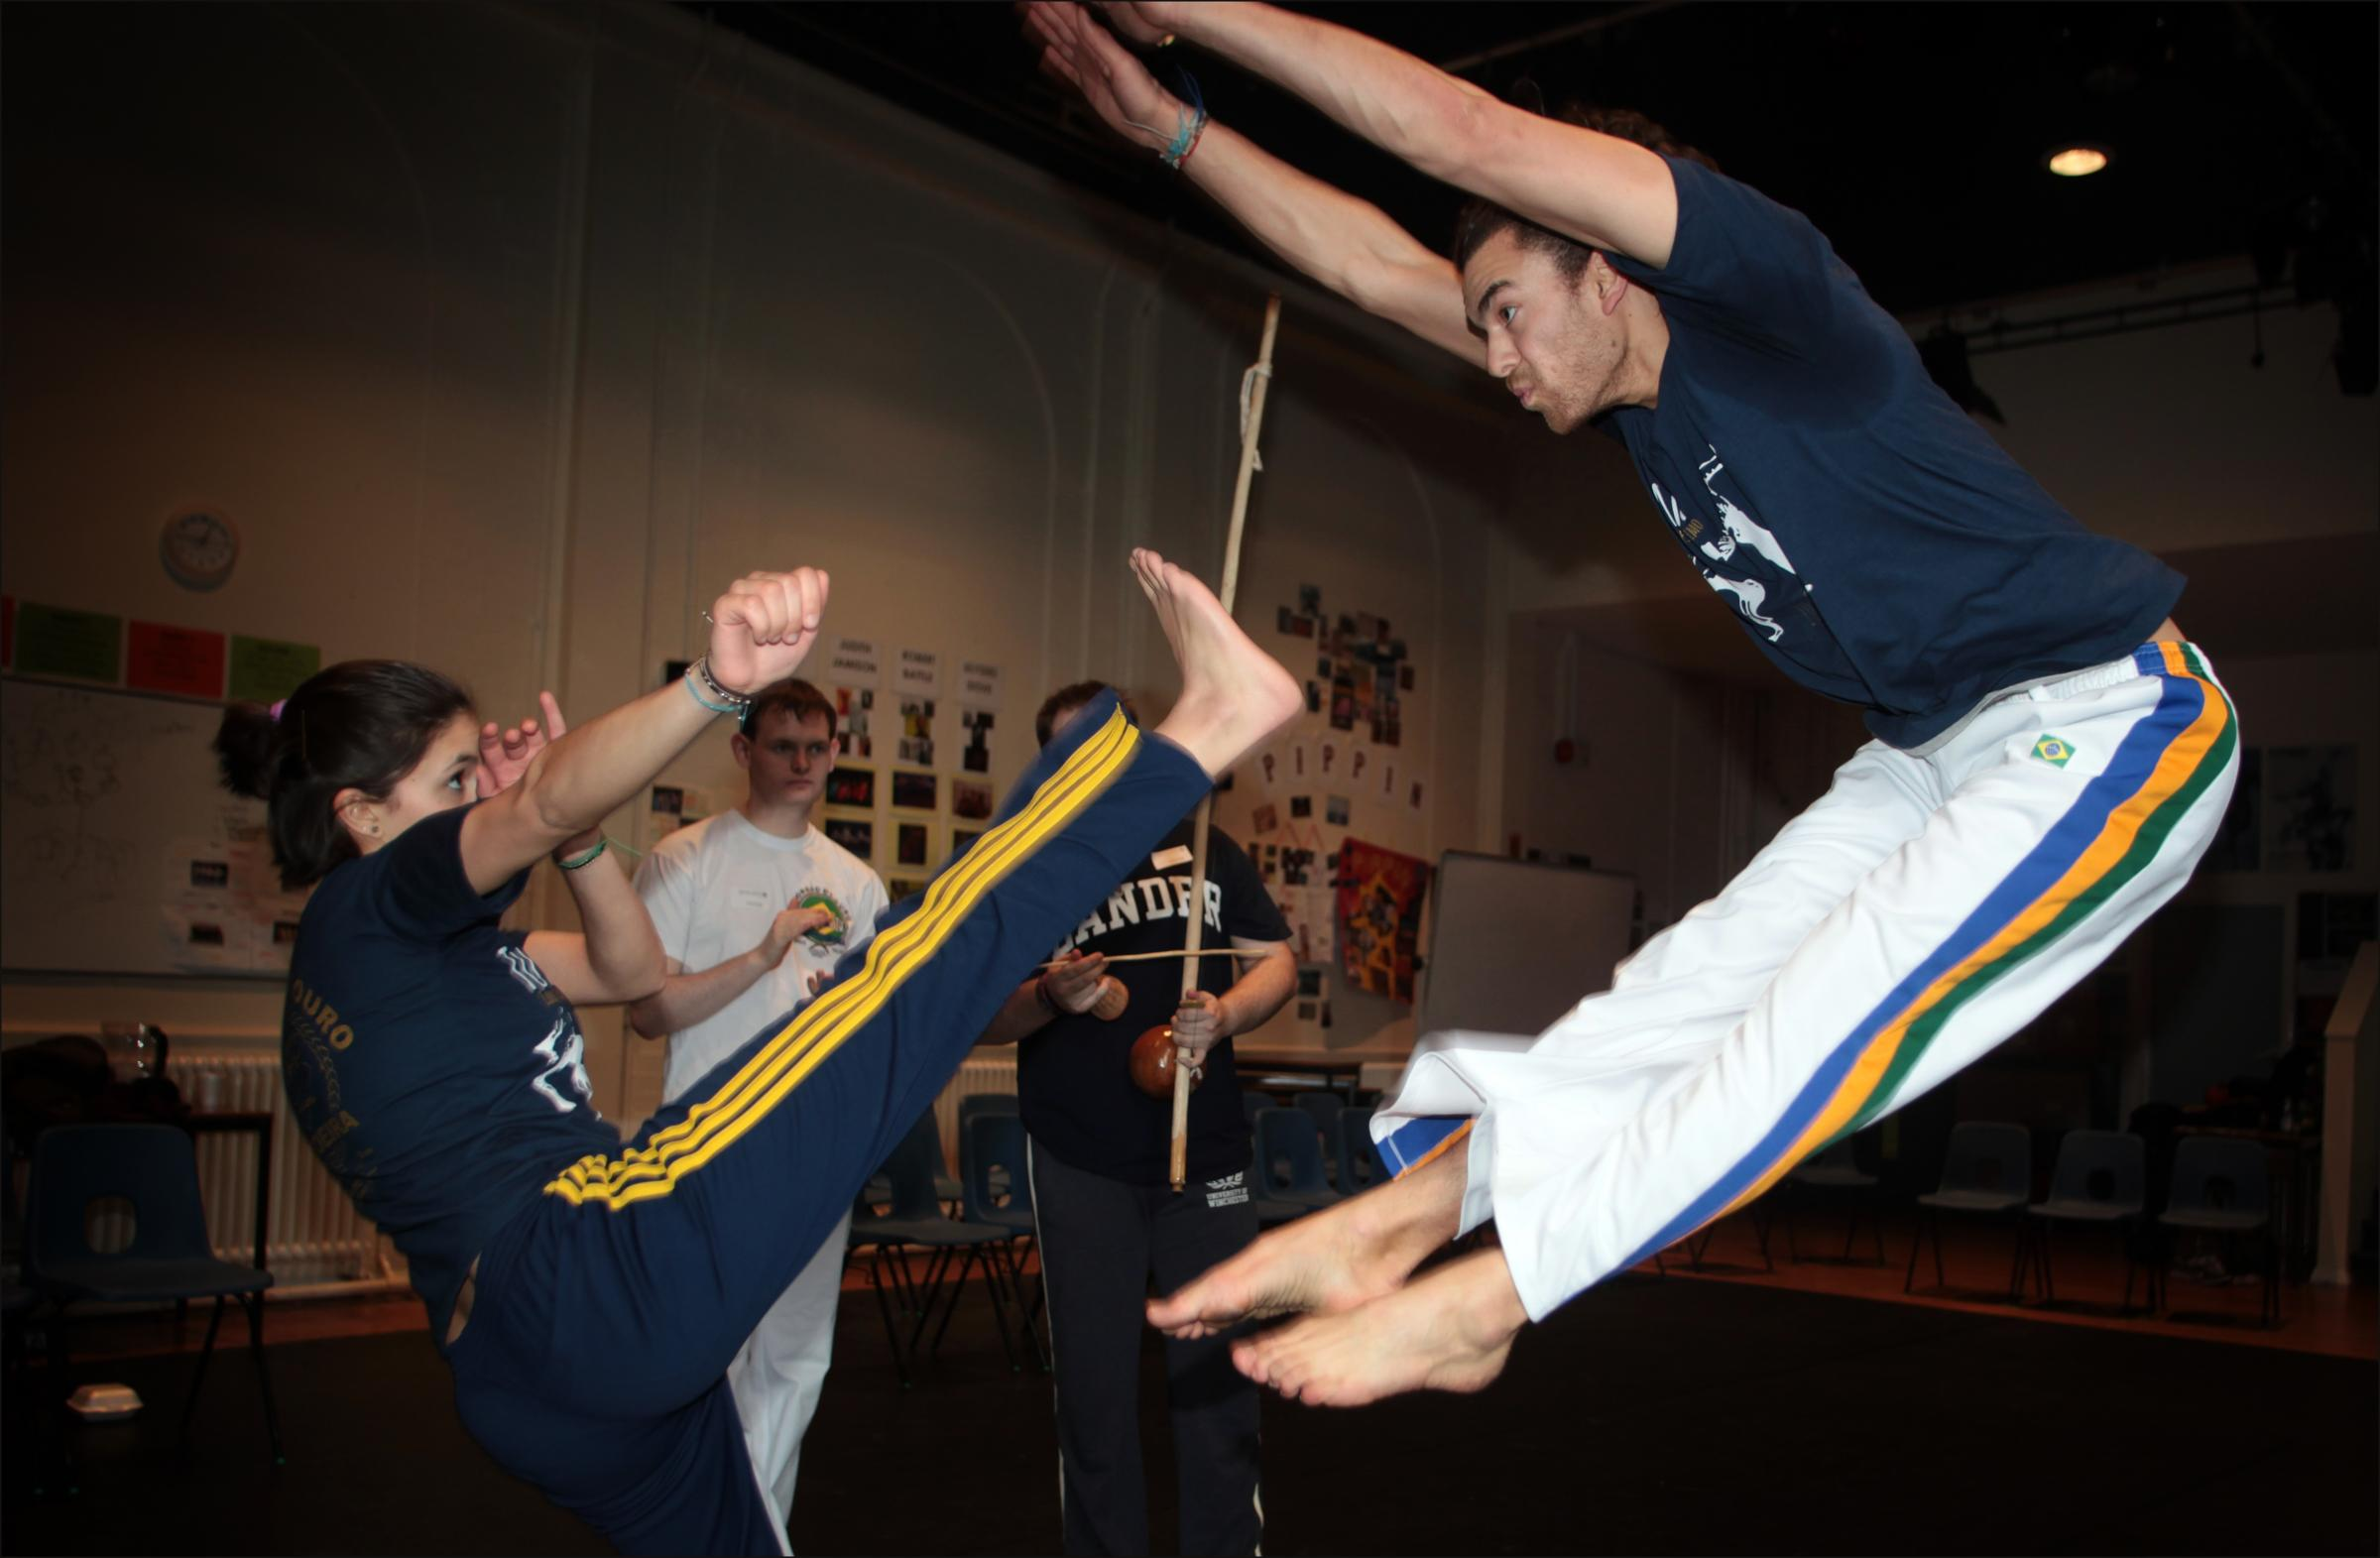 Students from Winchester University Eleanor Liverakos and Akil Morgan (front) with Tim Manthorpe and Jesse Millikin, perform Brazilian martial art Capoeira